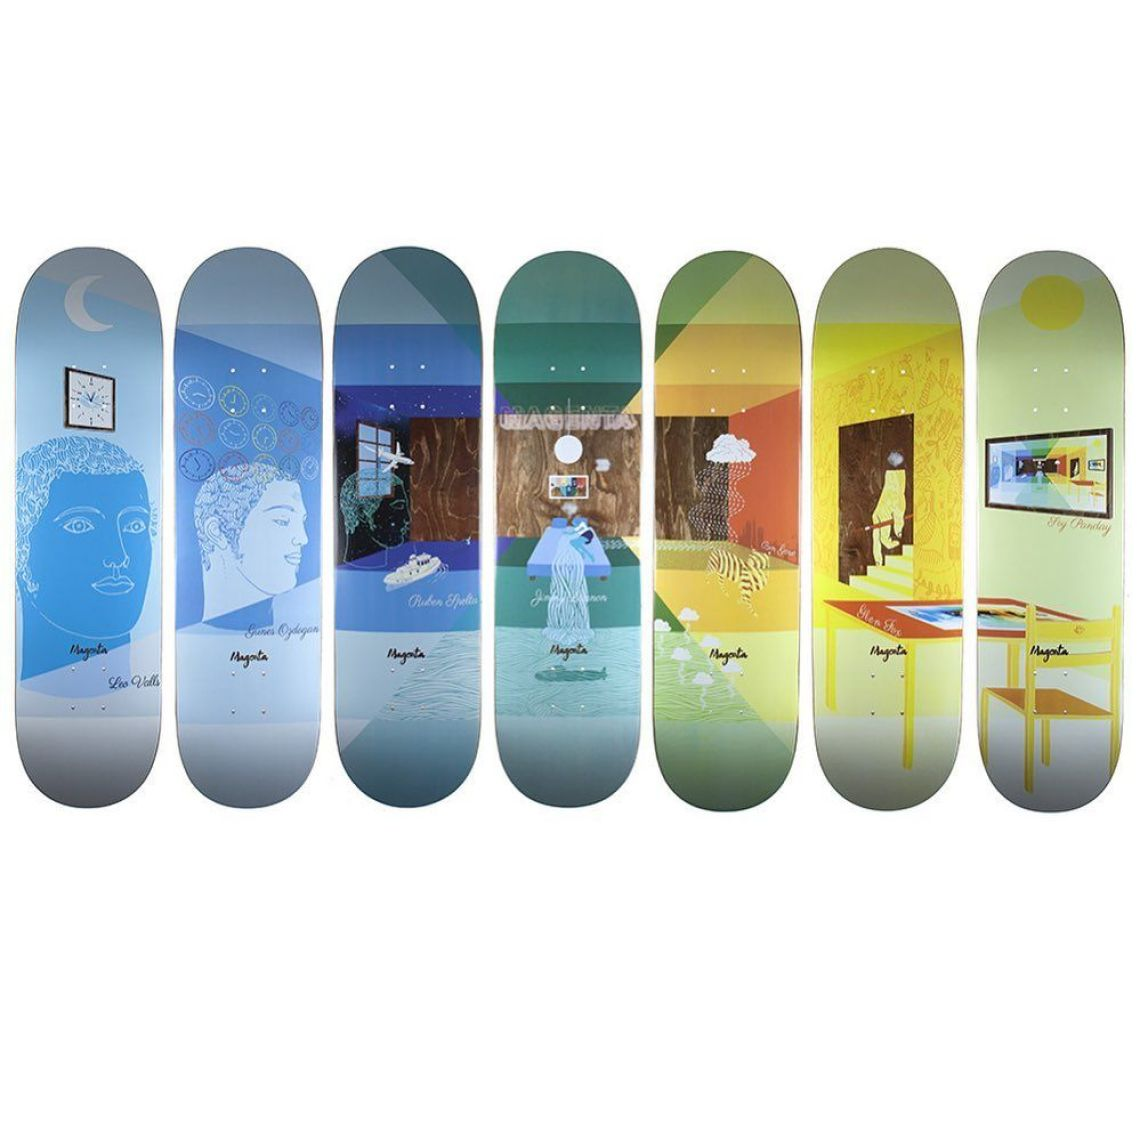 Sleep Board Series By Soy Panday For Magenta Skateboards 8